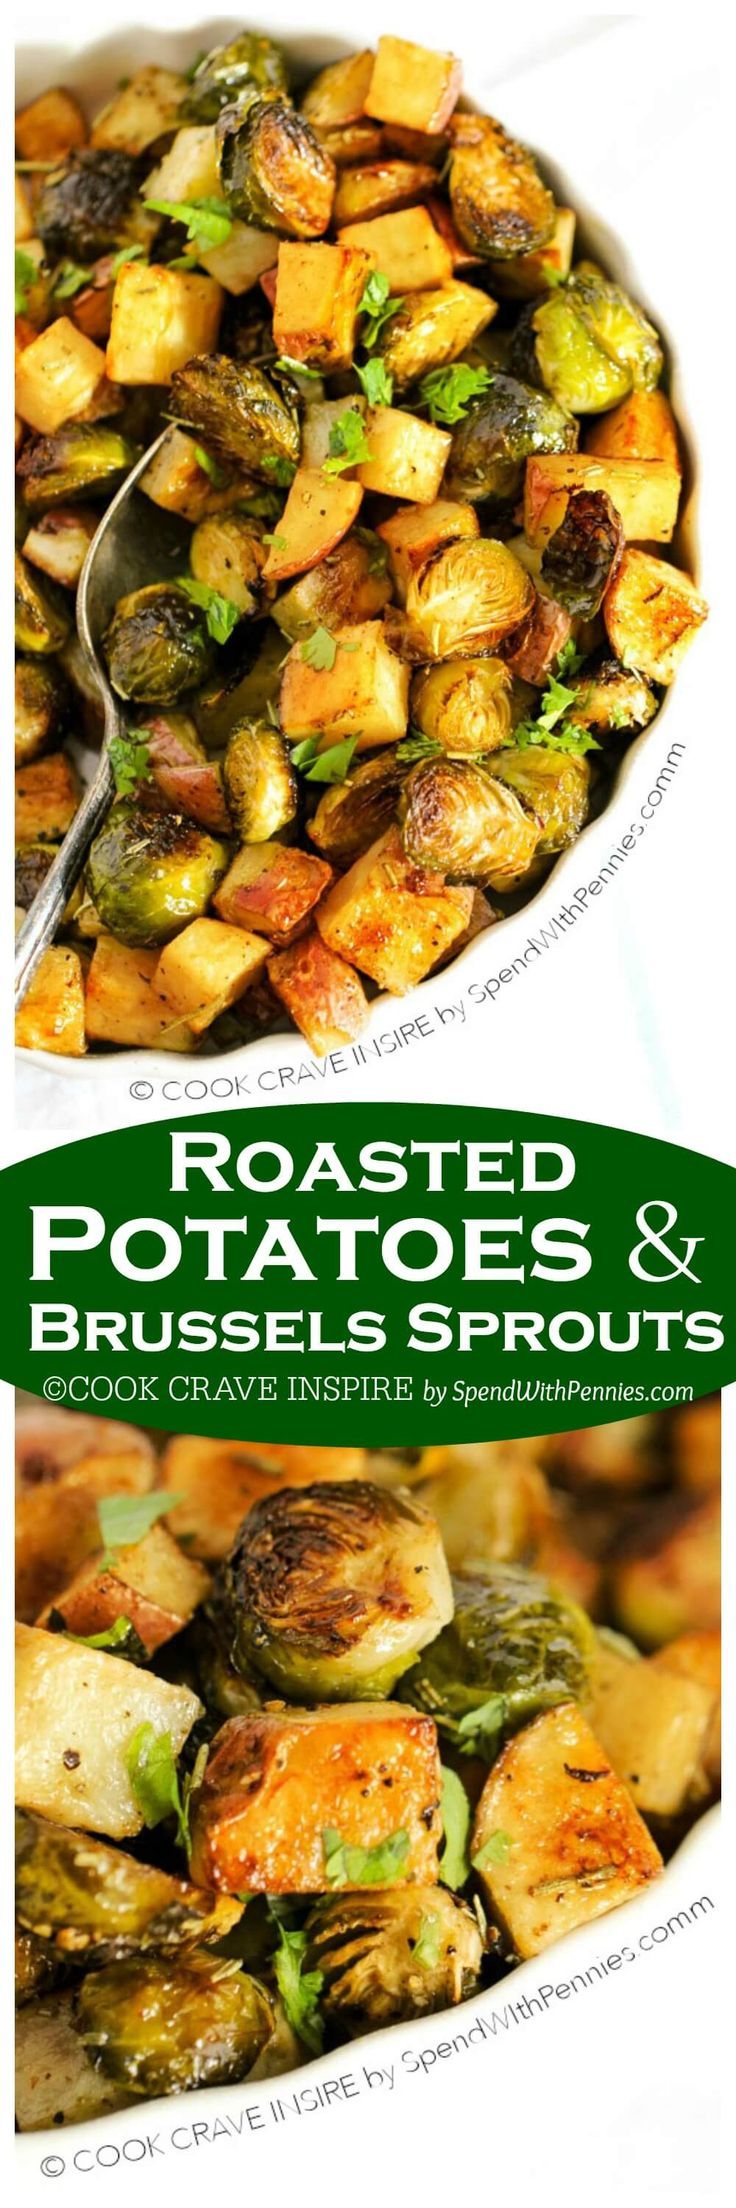 Roasted potatoes and brussels sprouts are easy to make & the perfect side dish idea. These contain rosemary & garlic powder but you can use you favorite seasonings! #bravahome